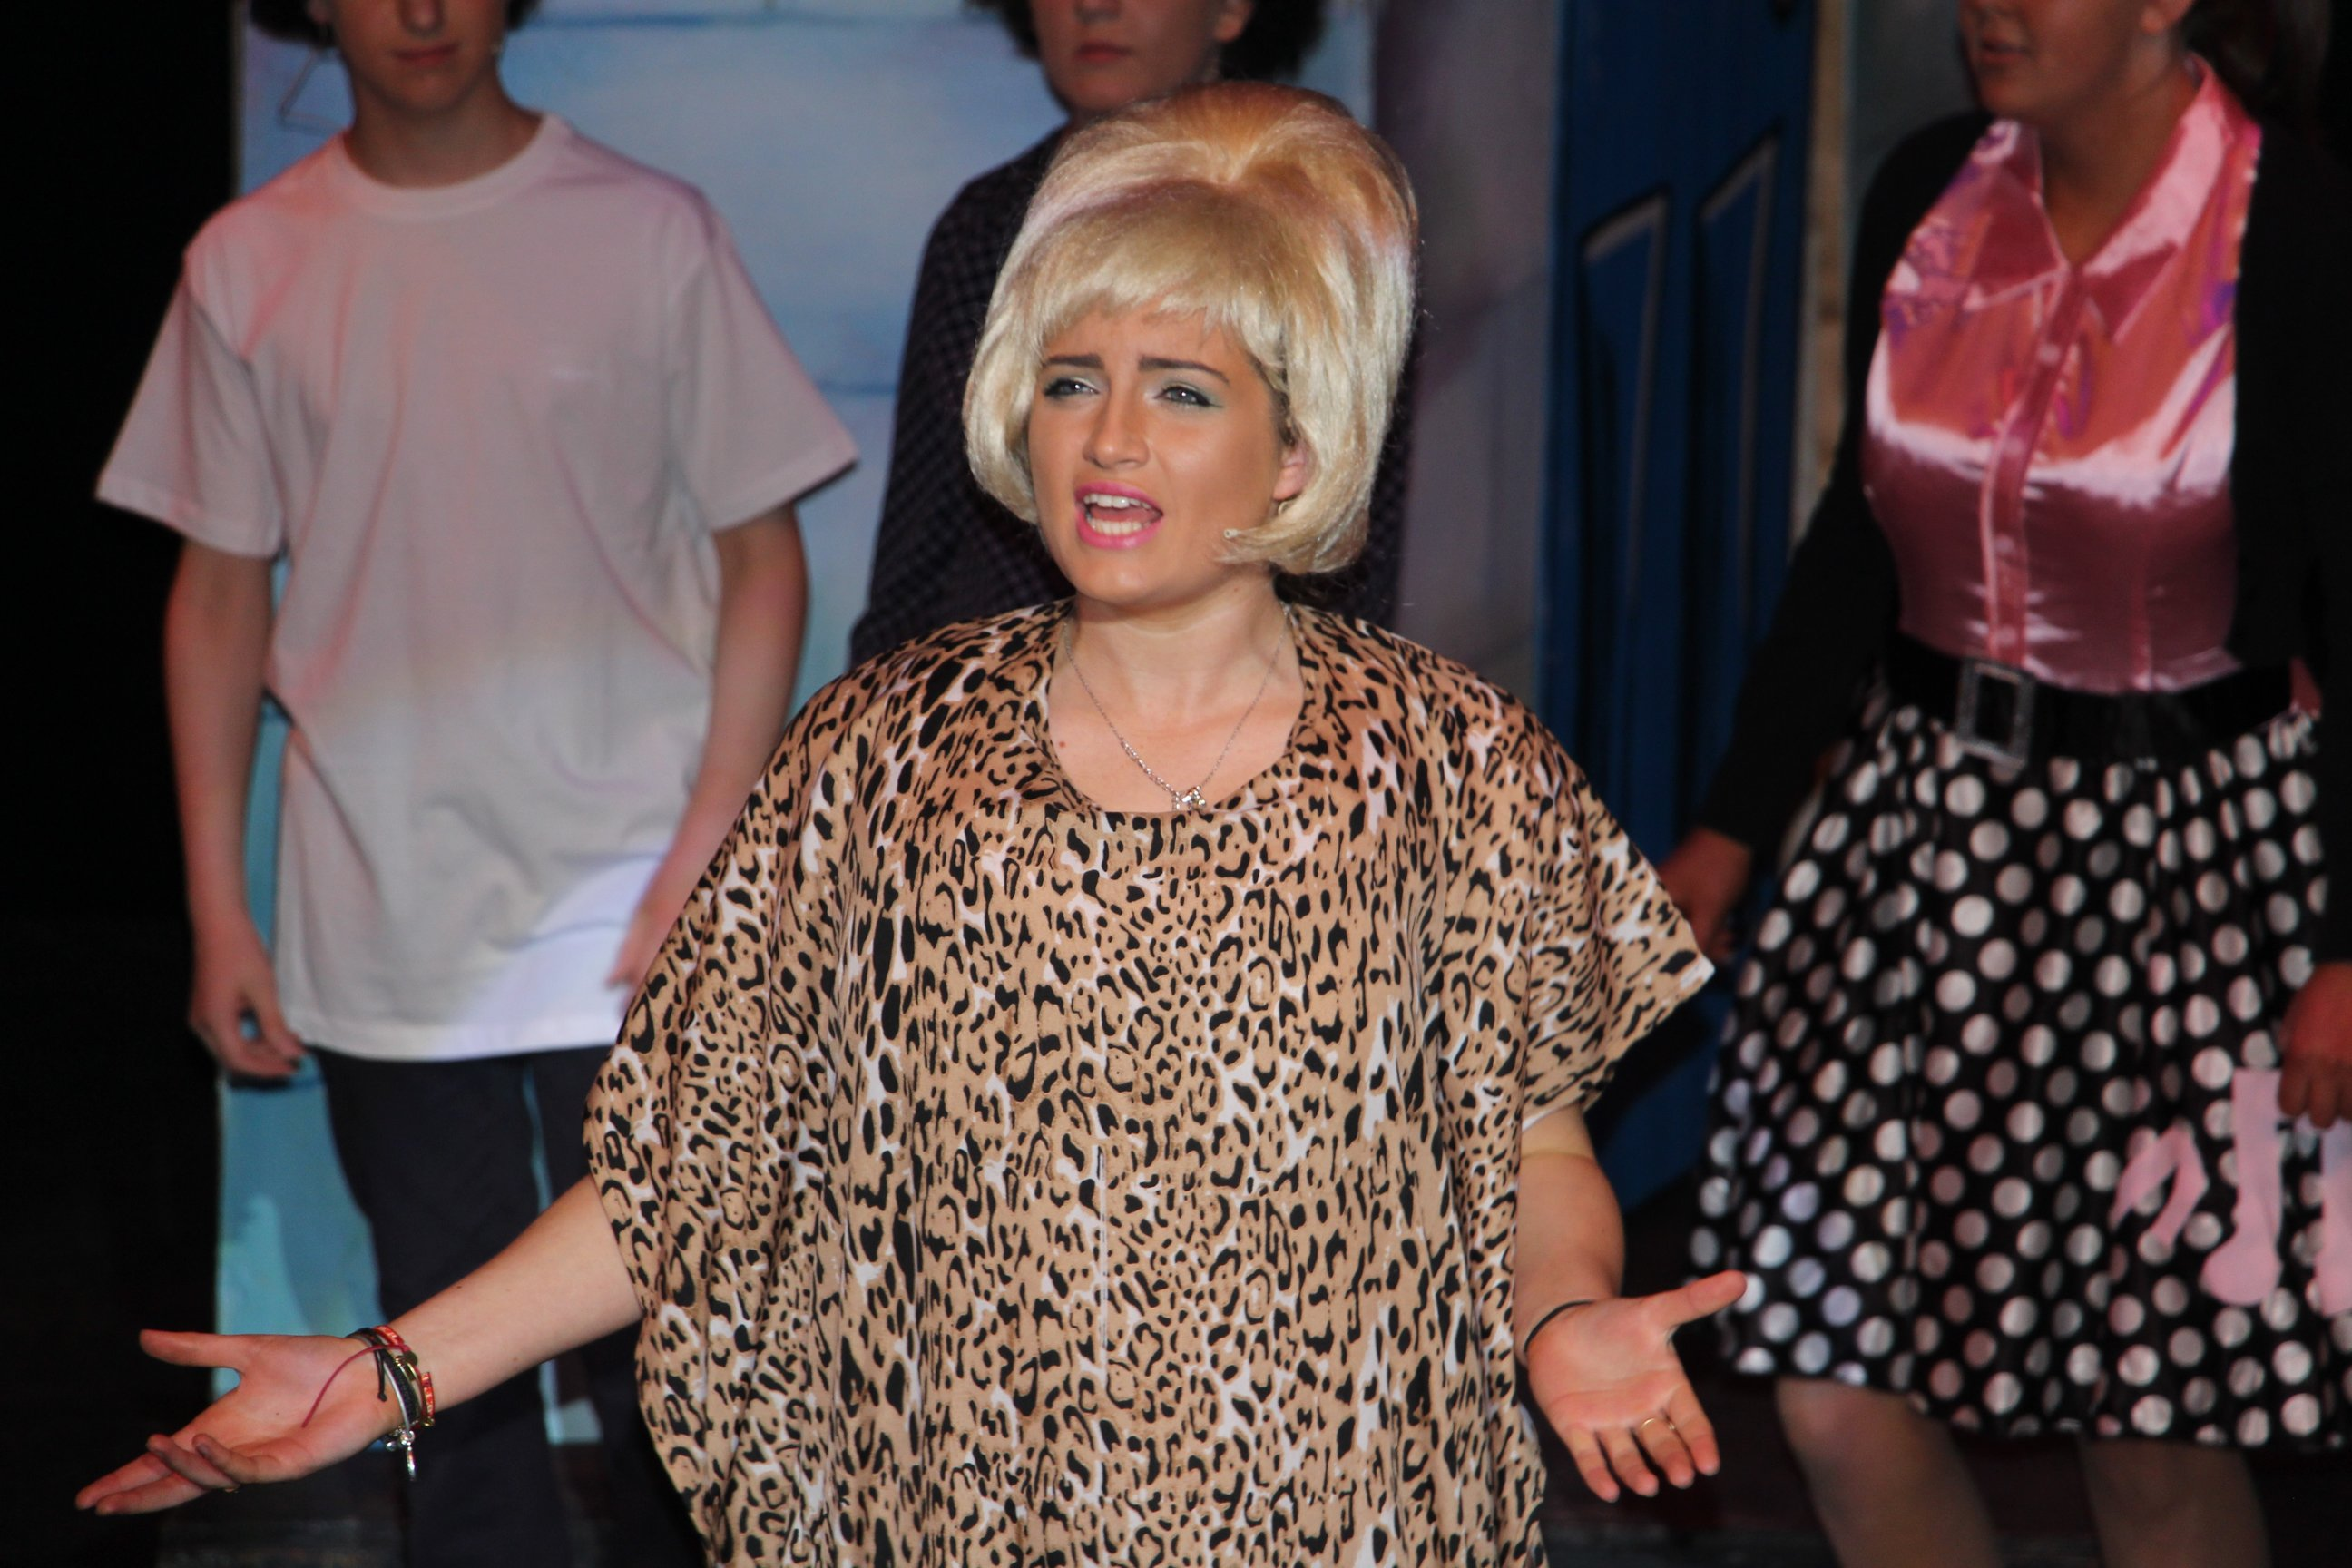 rsz maria lohan sparkles as motormouth maybelle in hairspray the musical put musical title in italics please